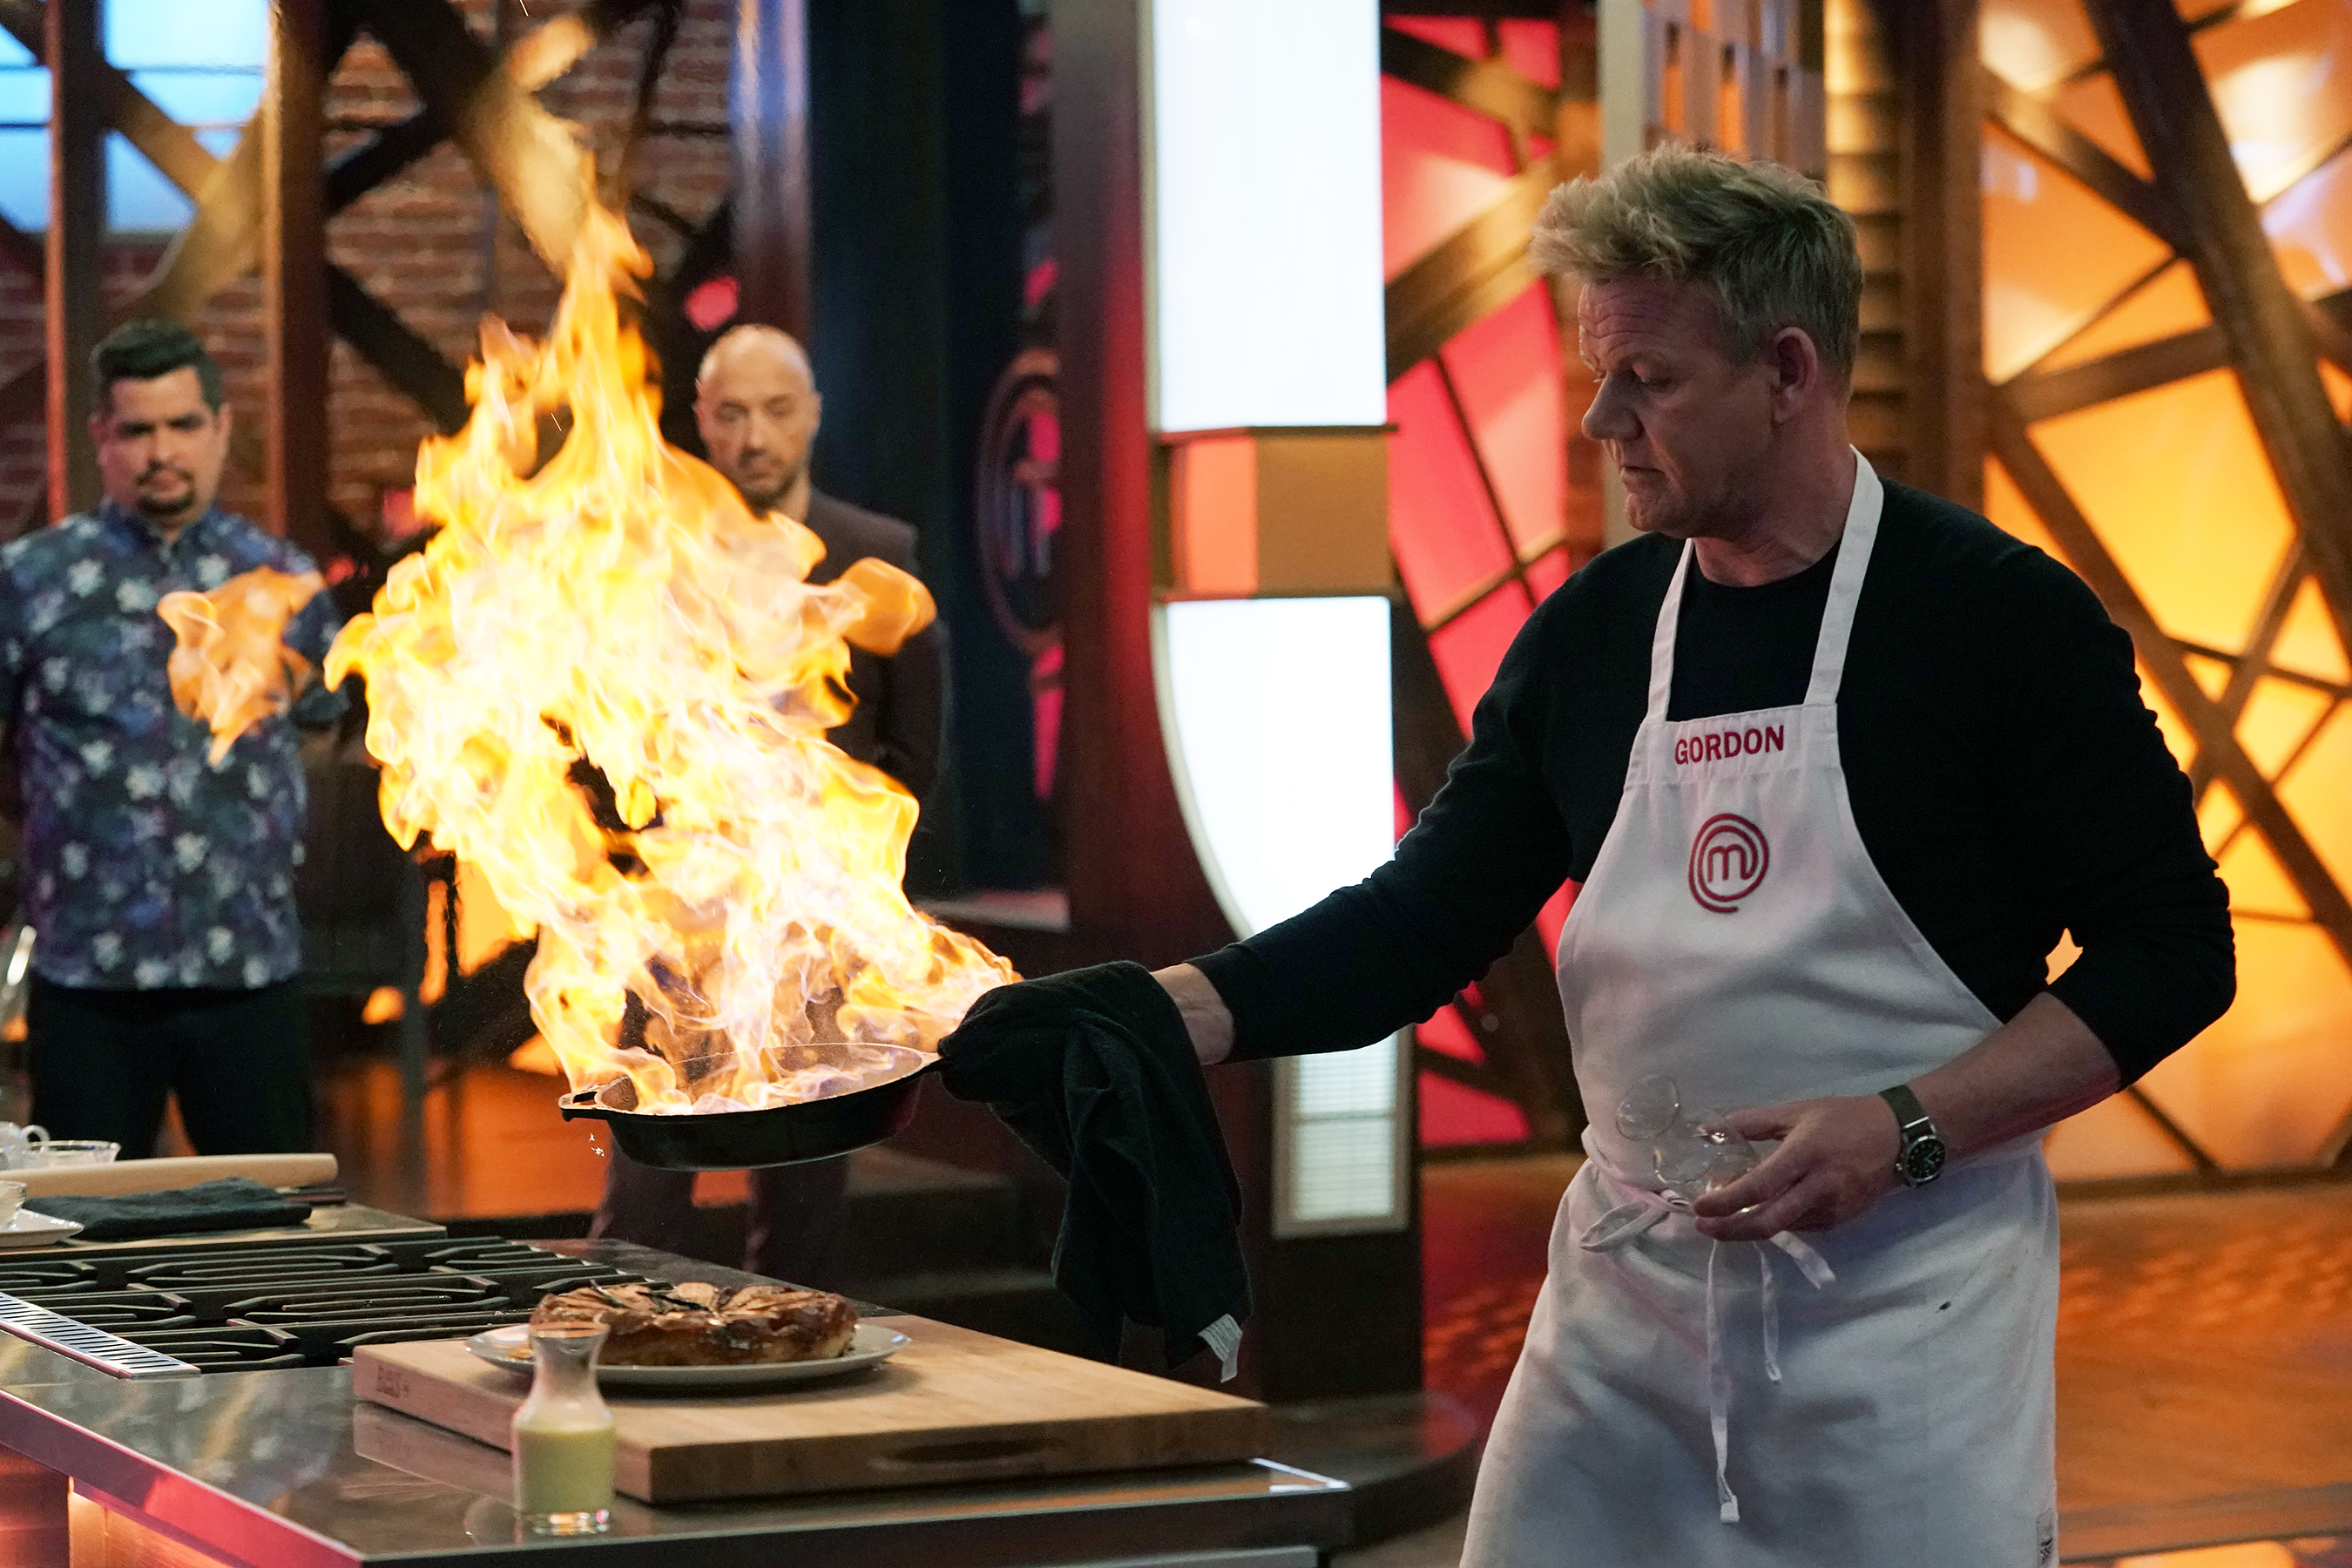 Gordon Ramsay Launches Studio Ramsay Global With Fox Entertainment As Part Of Mega-Overall Deal